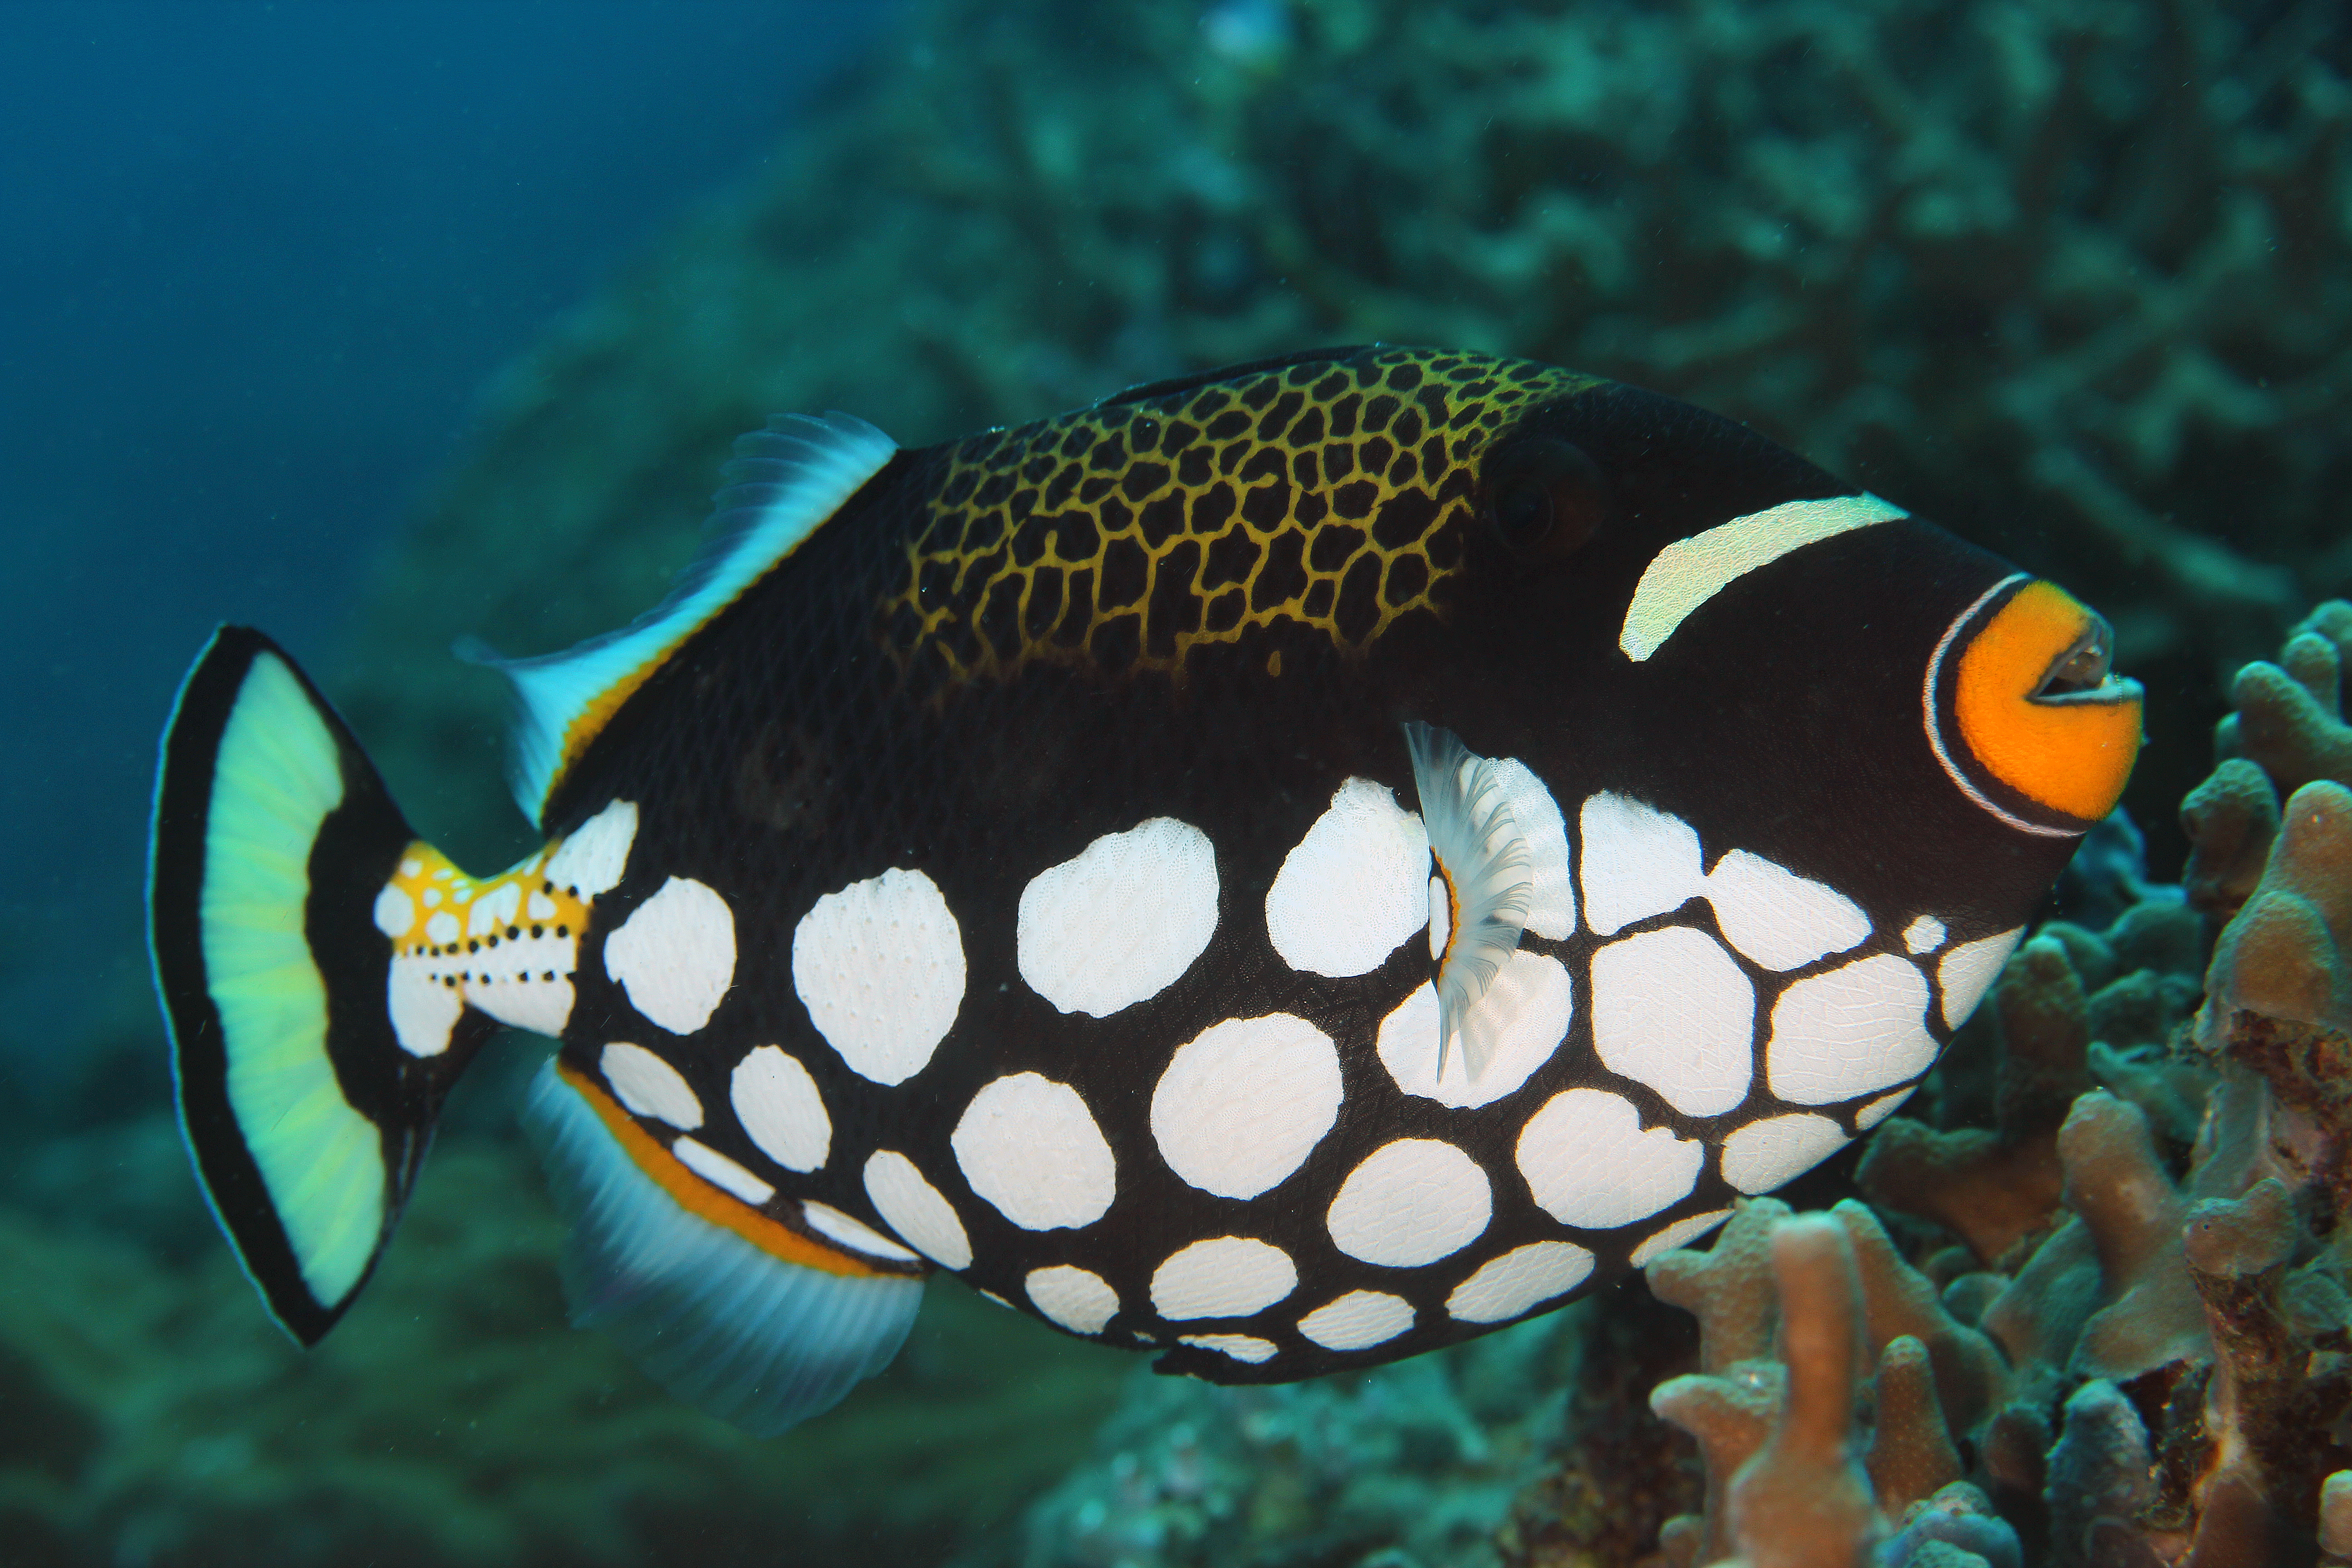 Clown Driggerfish